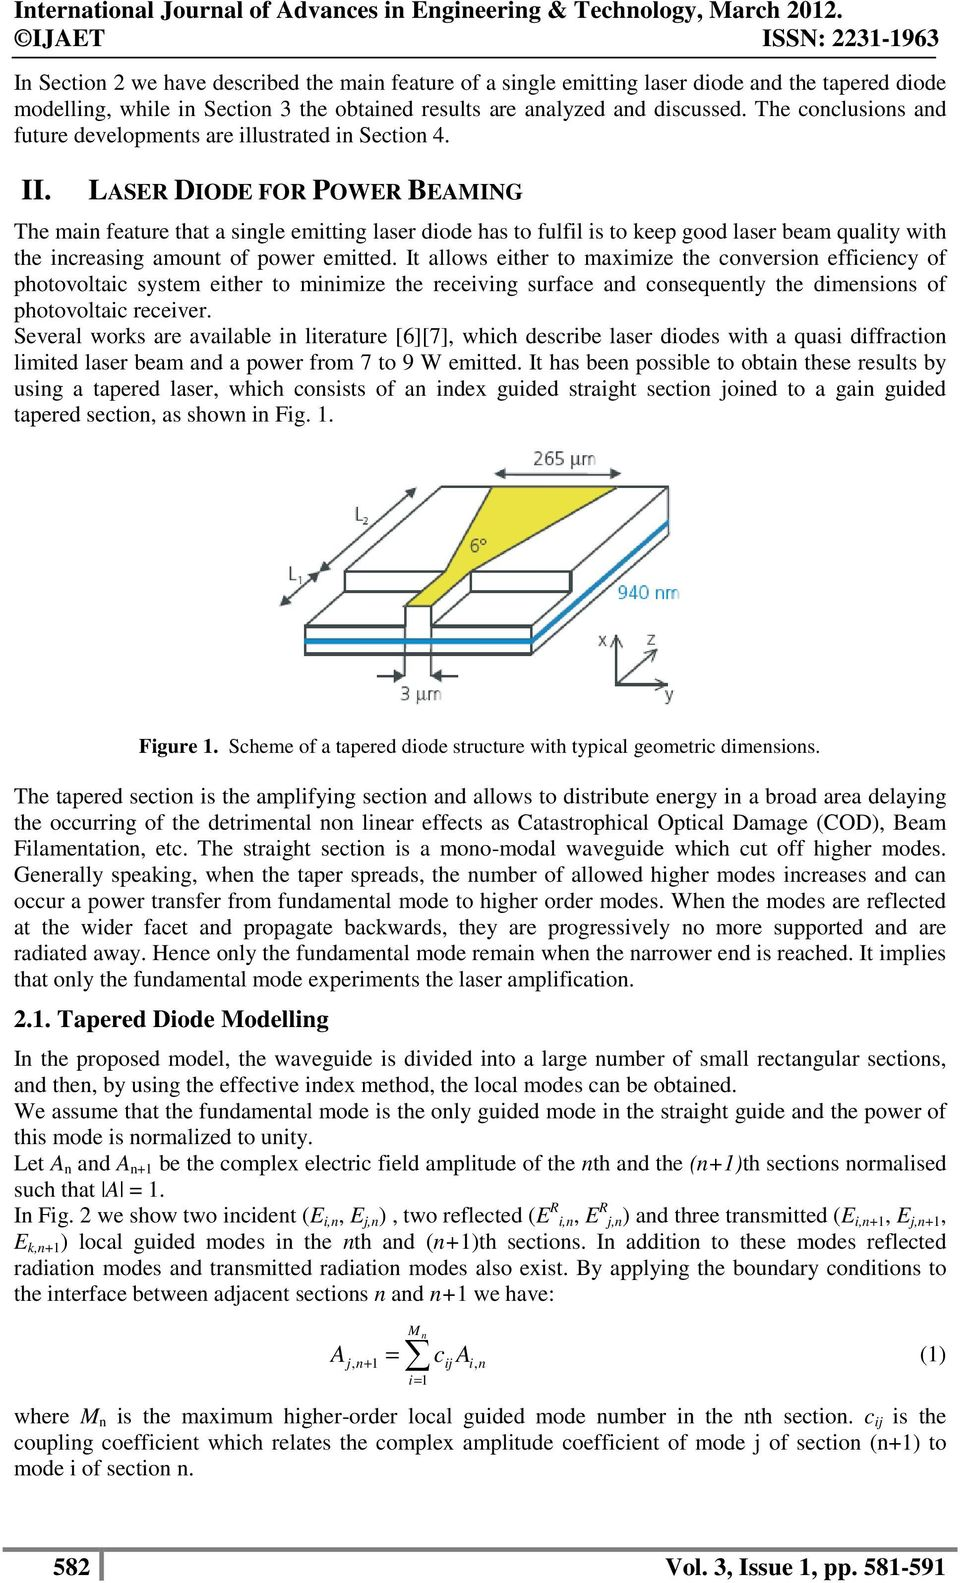 Laser Diode Modelling For Wireless Power Transmission Pdf Structure Of A The Cocluio Ad Future Developmet Are Illutrated I Sectio 4 Ii